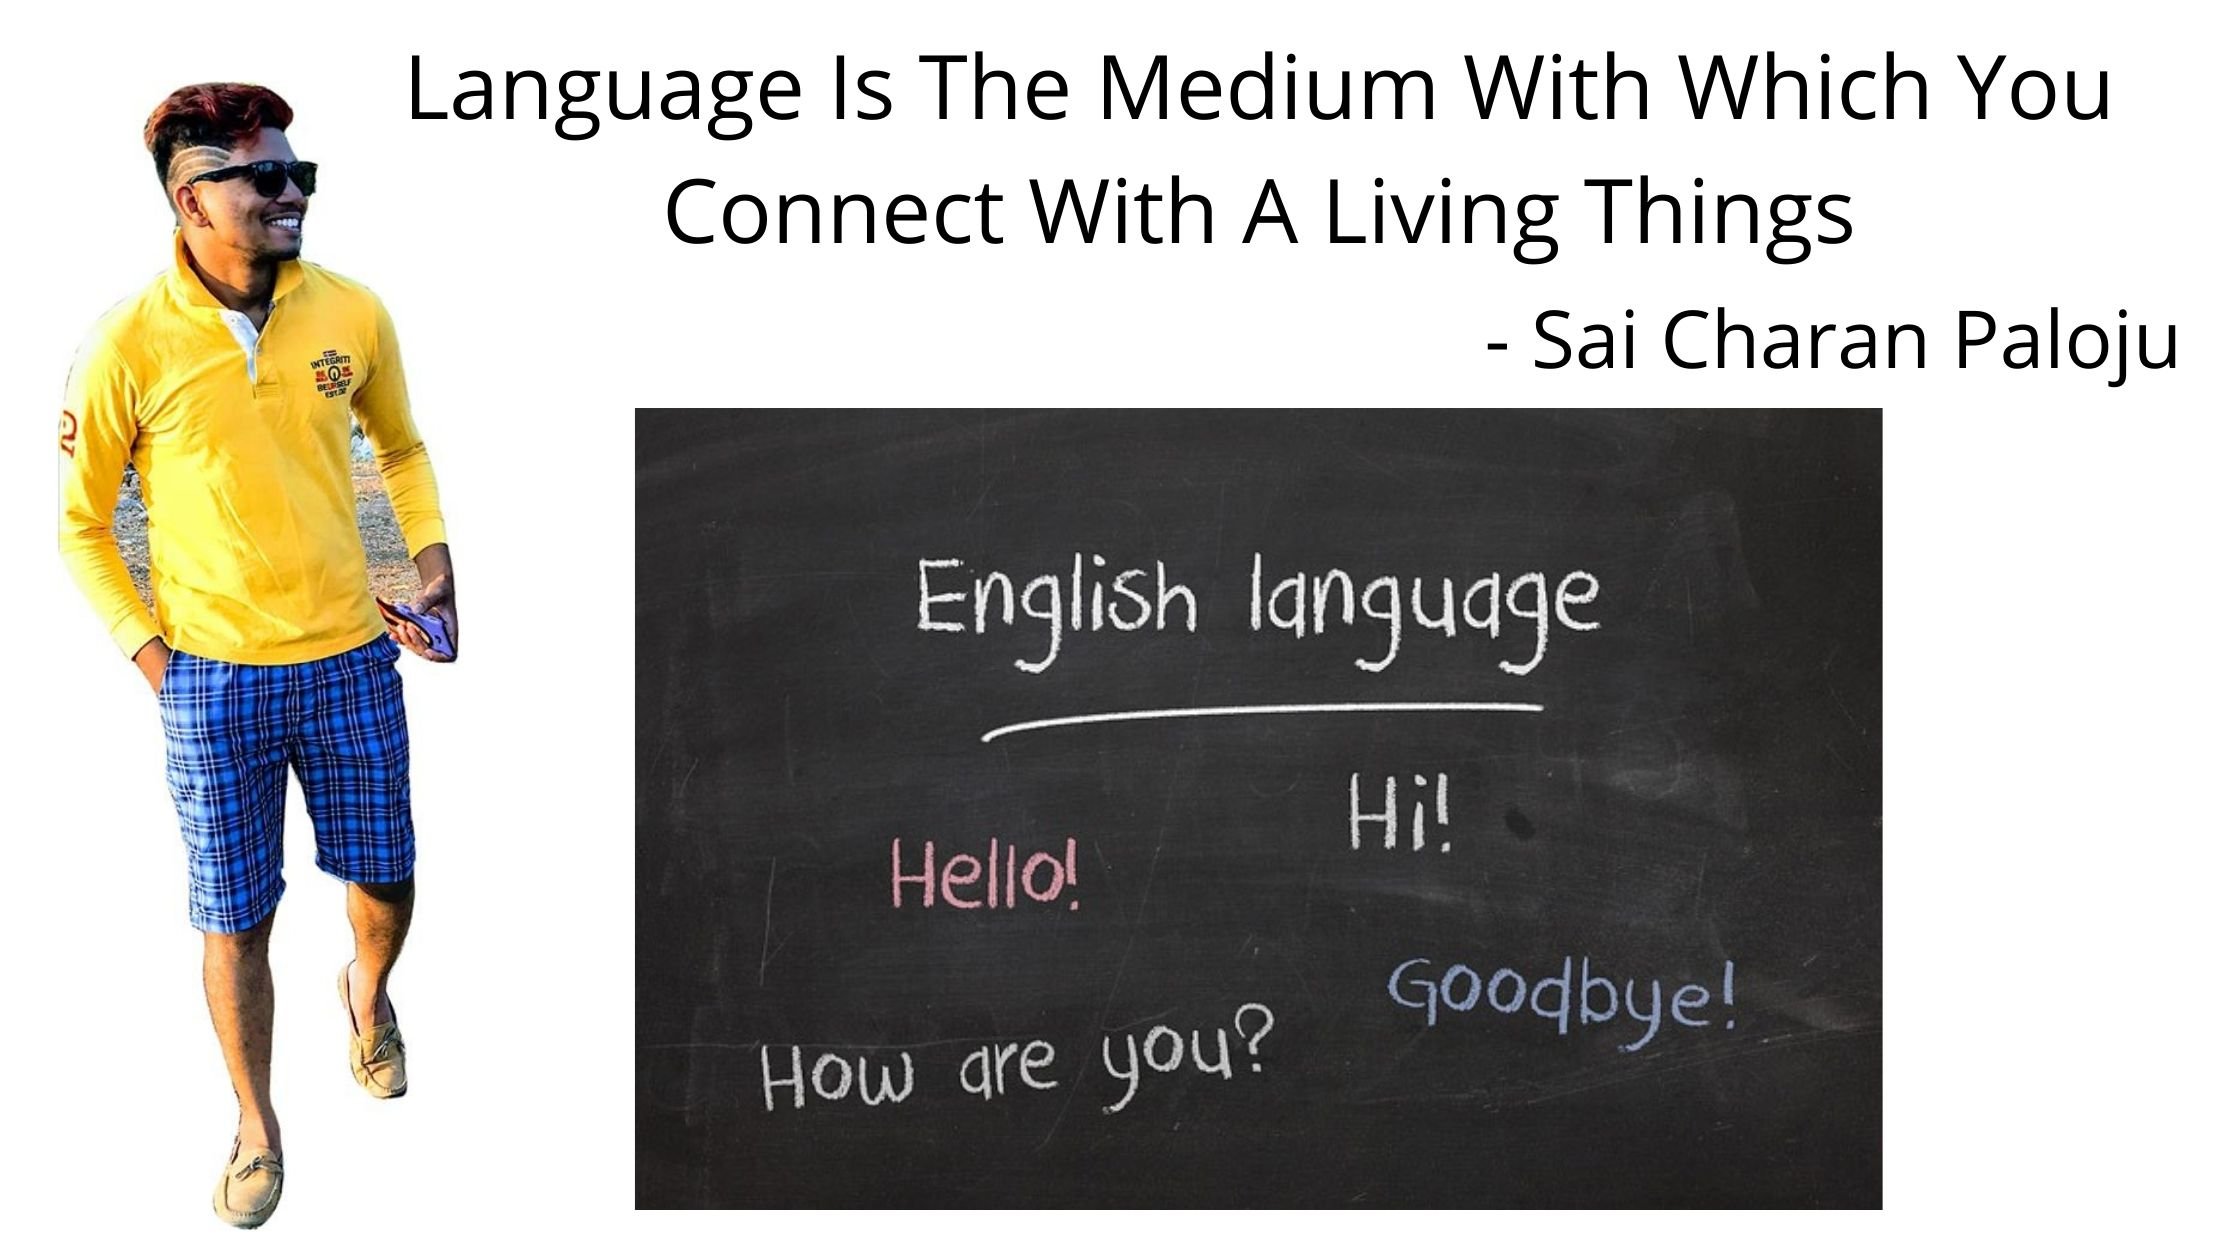 Language Is Medium With Which You Connect With Living Things